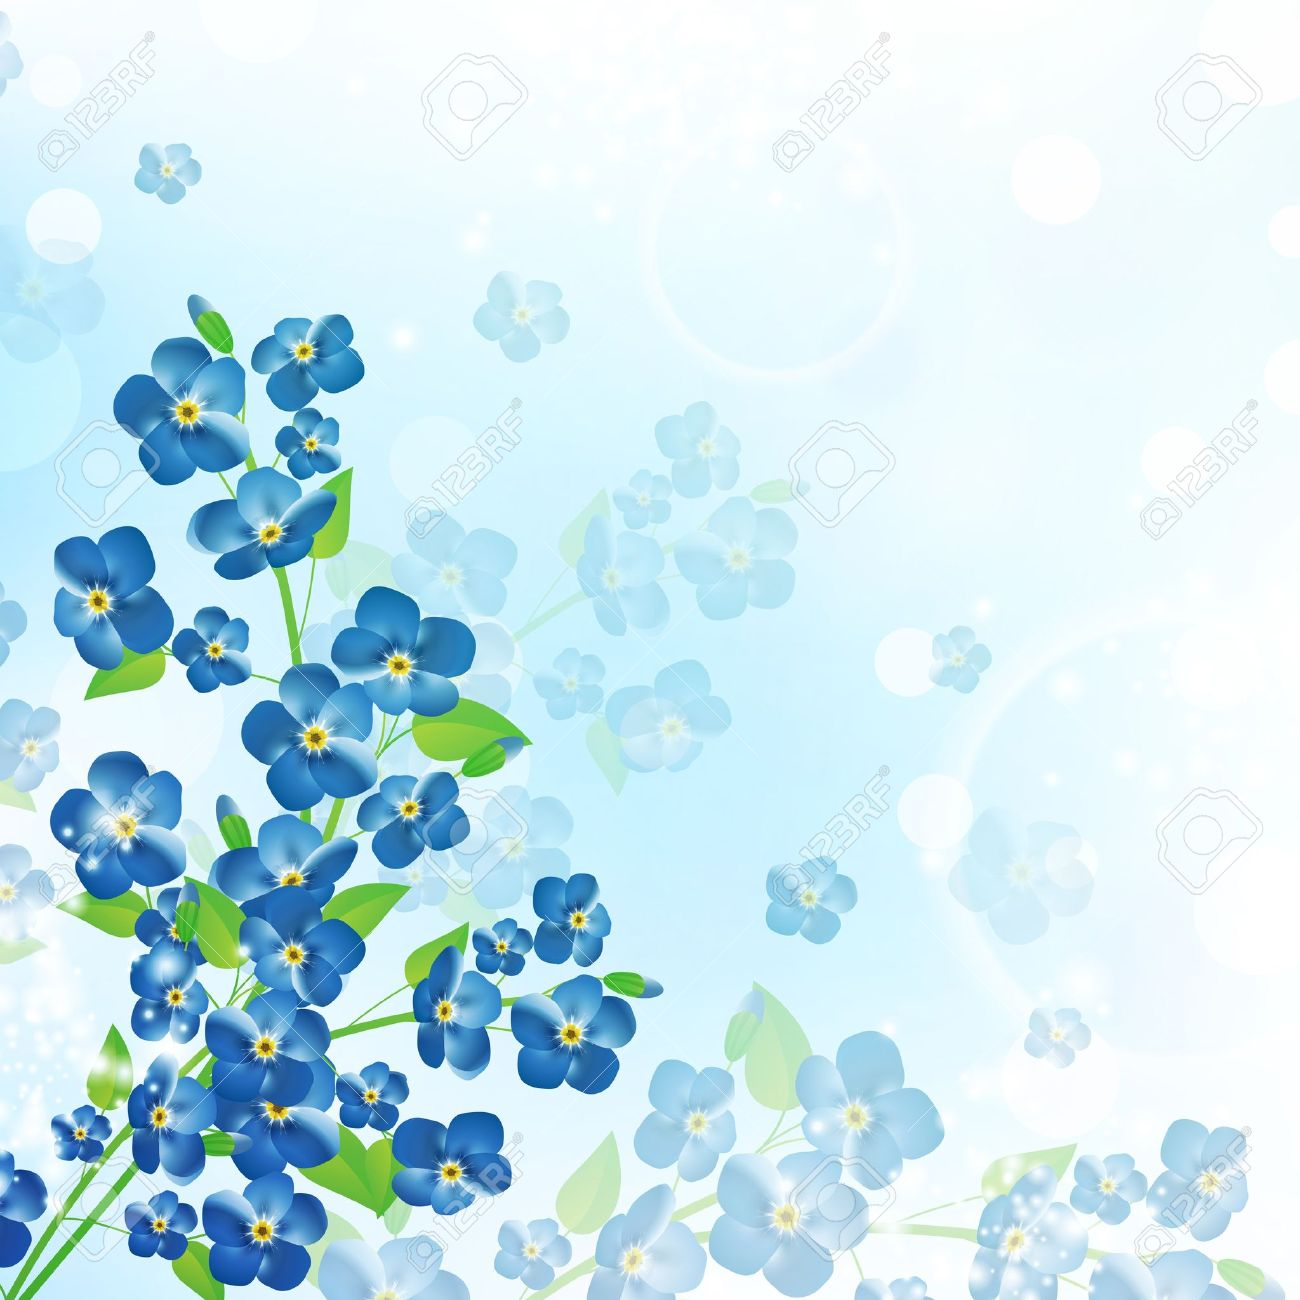 1,506 Forgetmenot Stock Vector Illustration And Royalty Free.